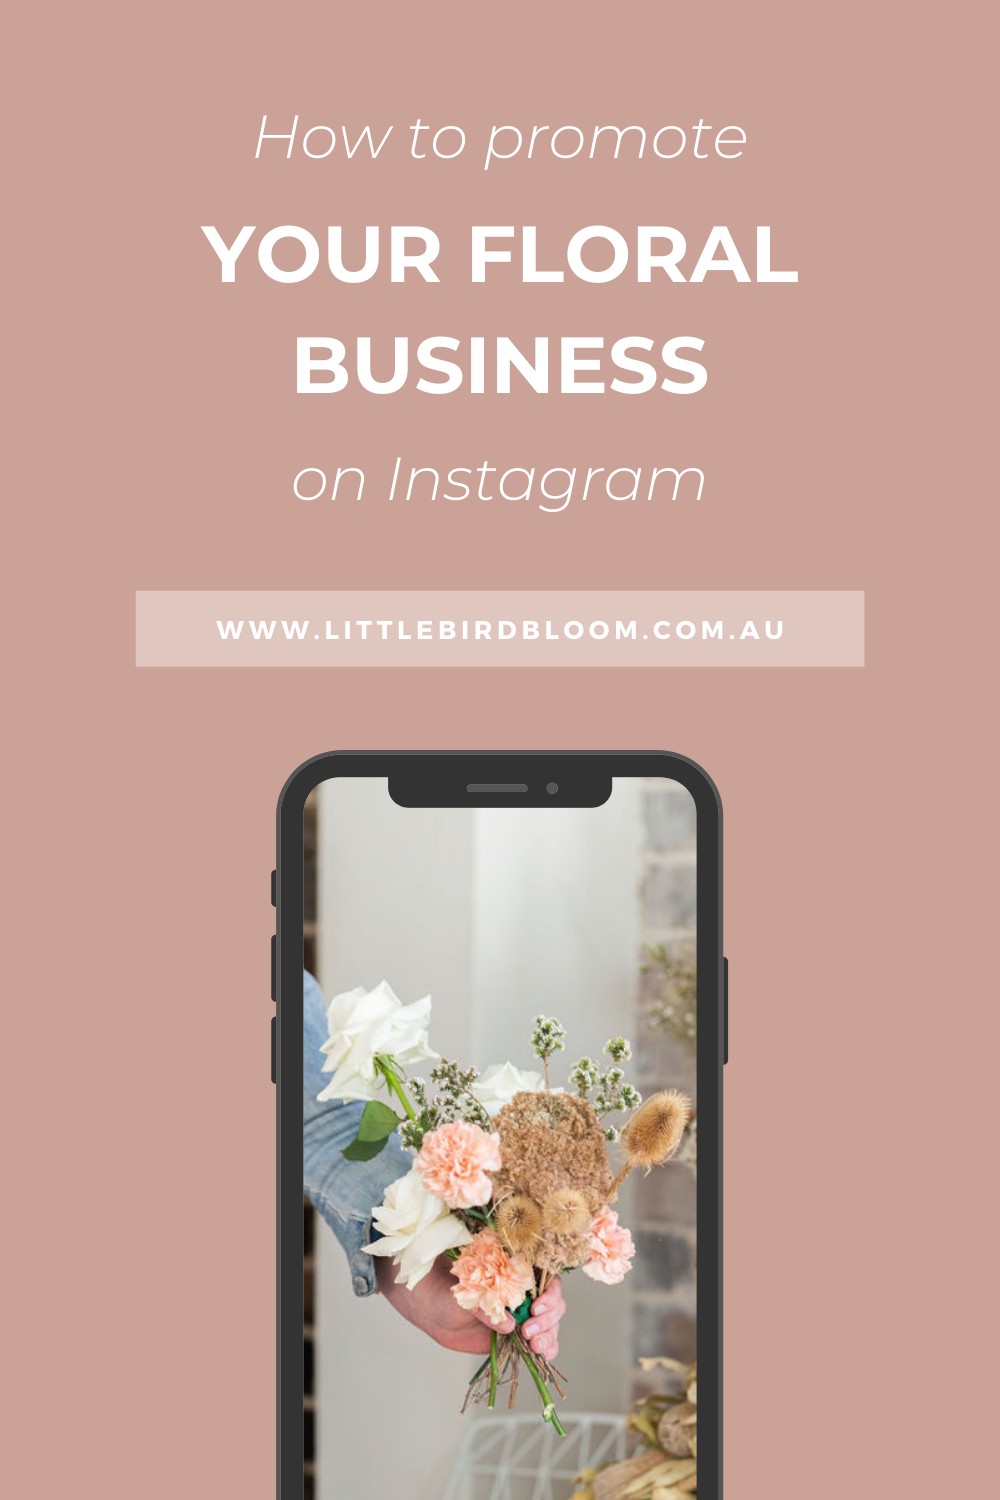 How to promote your flower business on Instagram